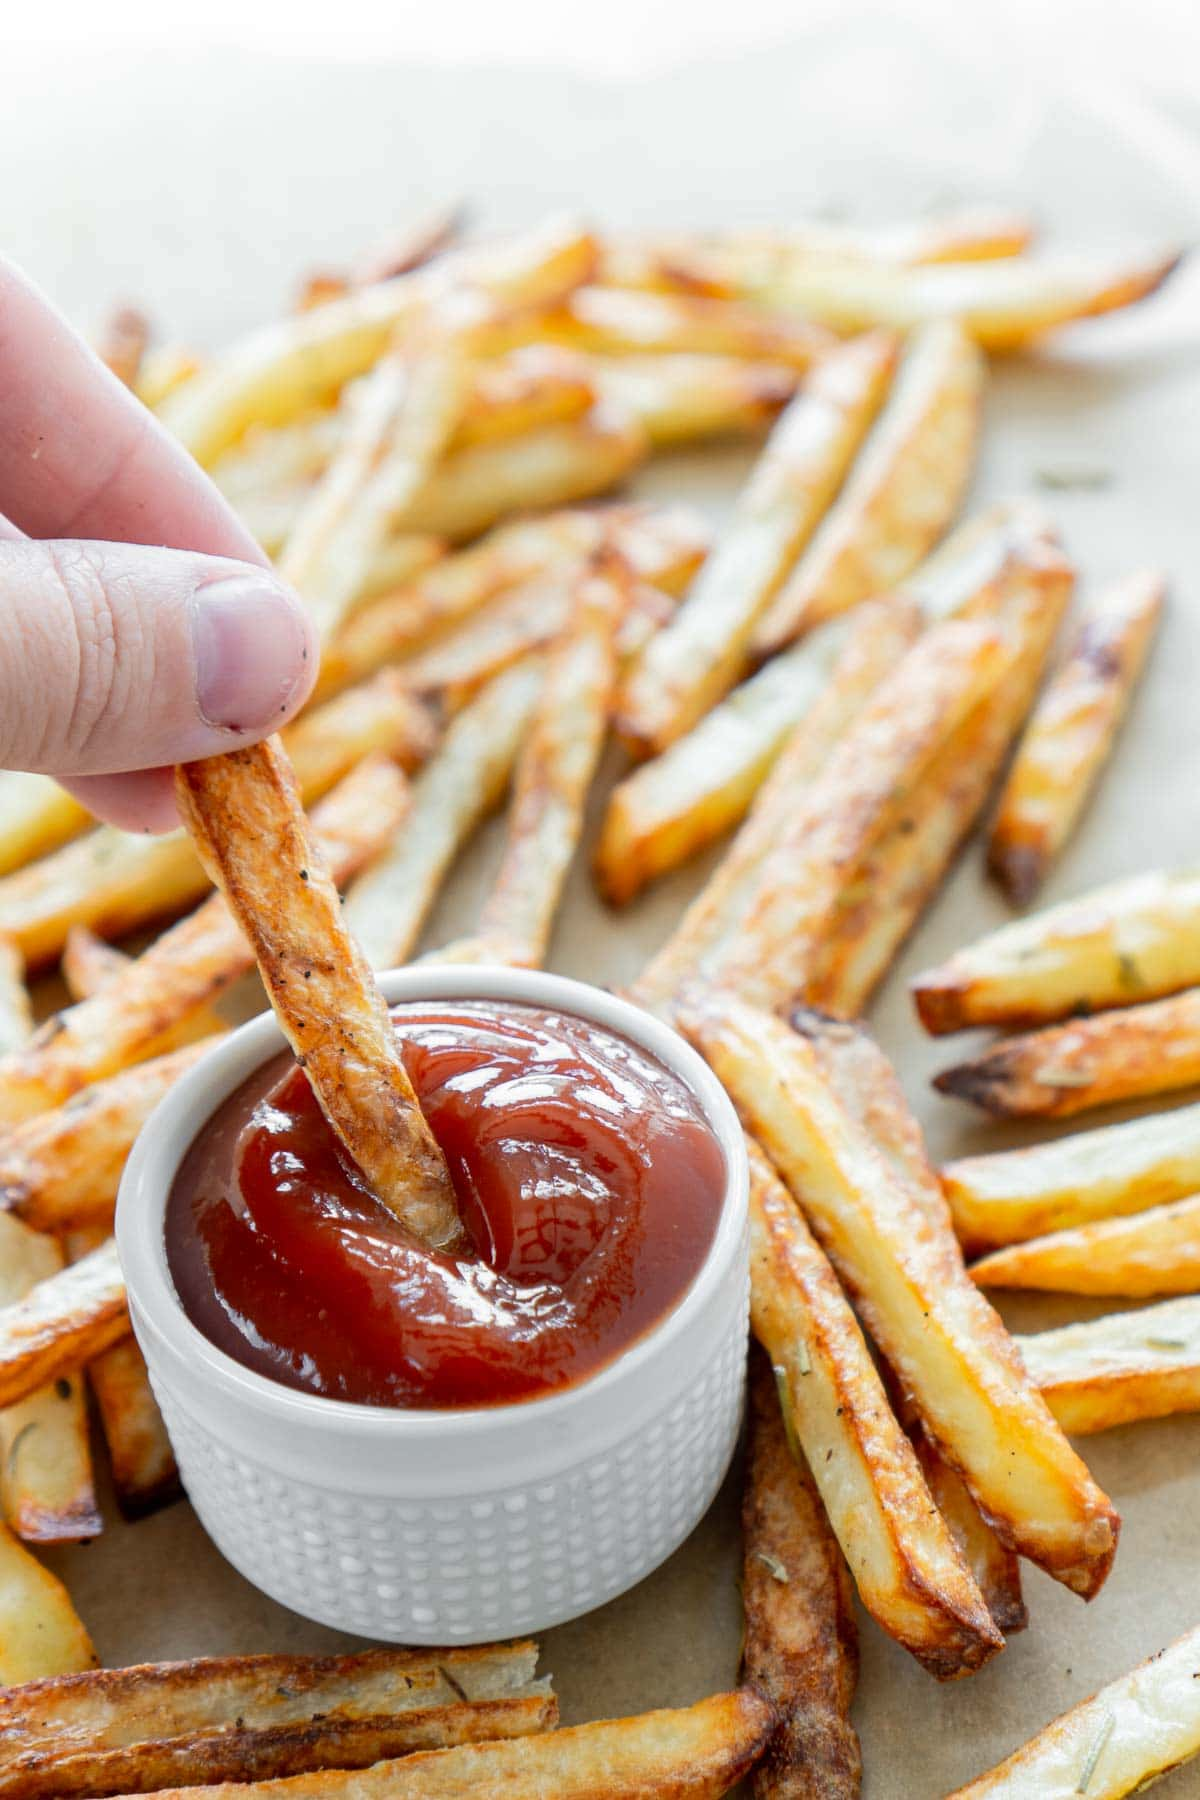 Woman's hand dipping a french fry in ketchup with a plate of air fryer fries